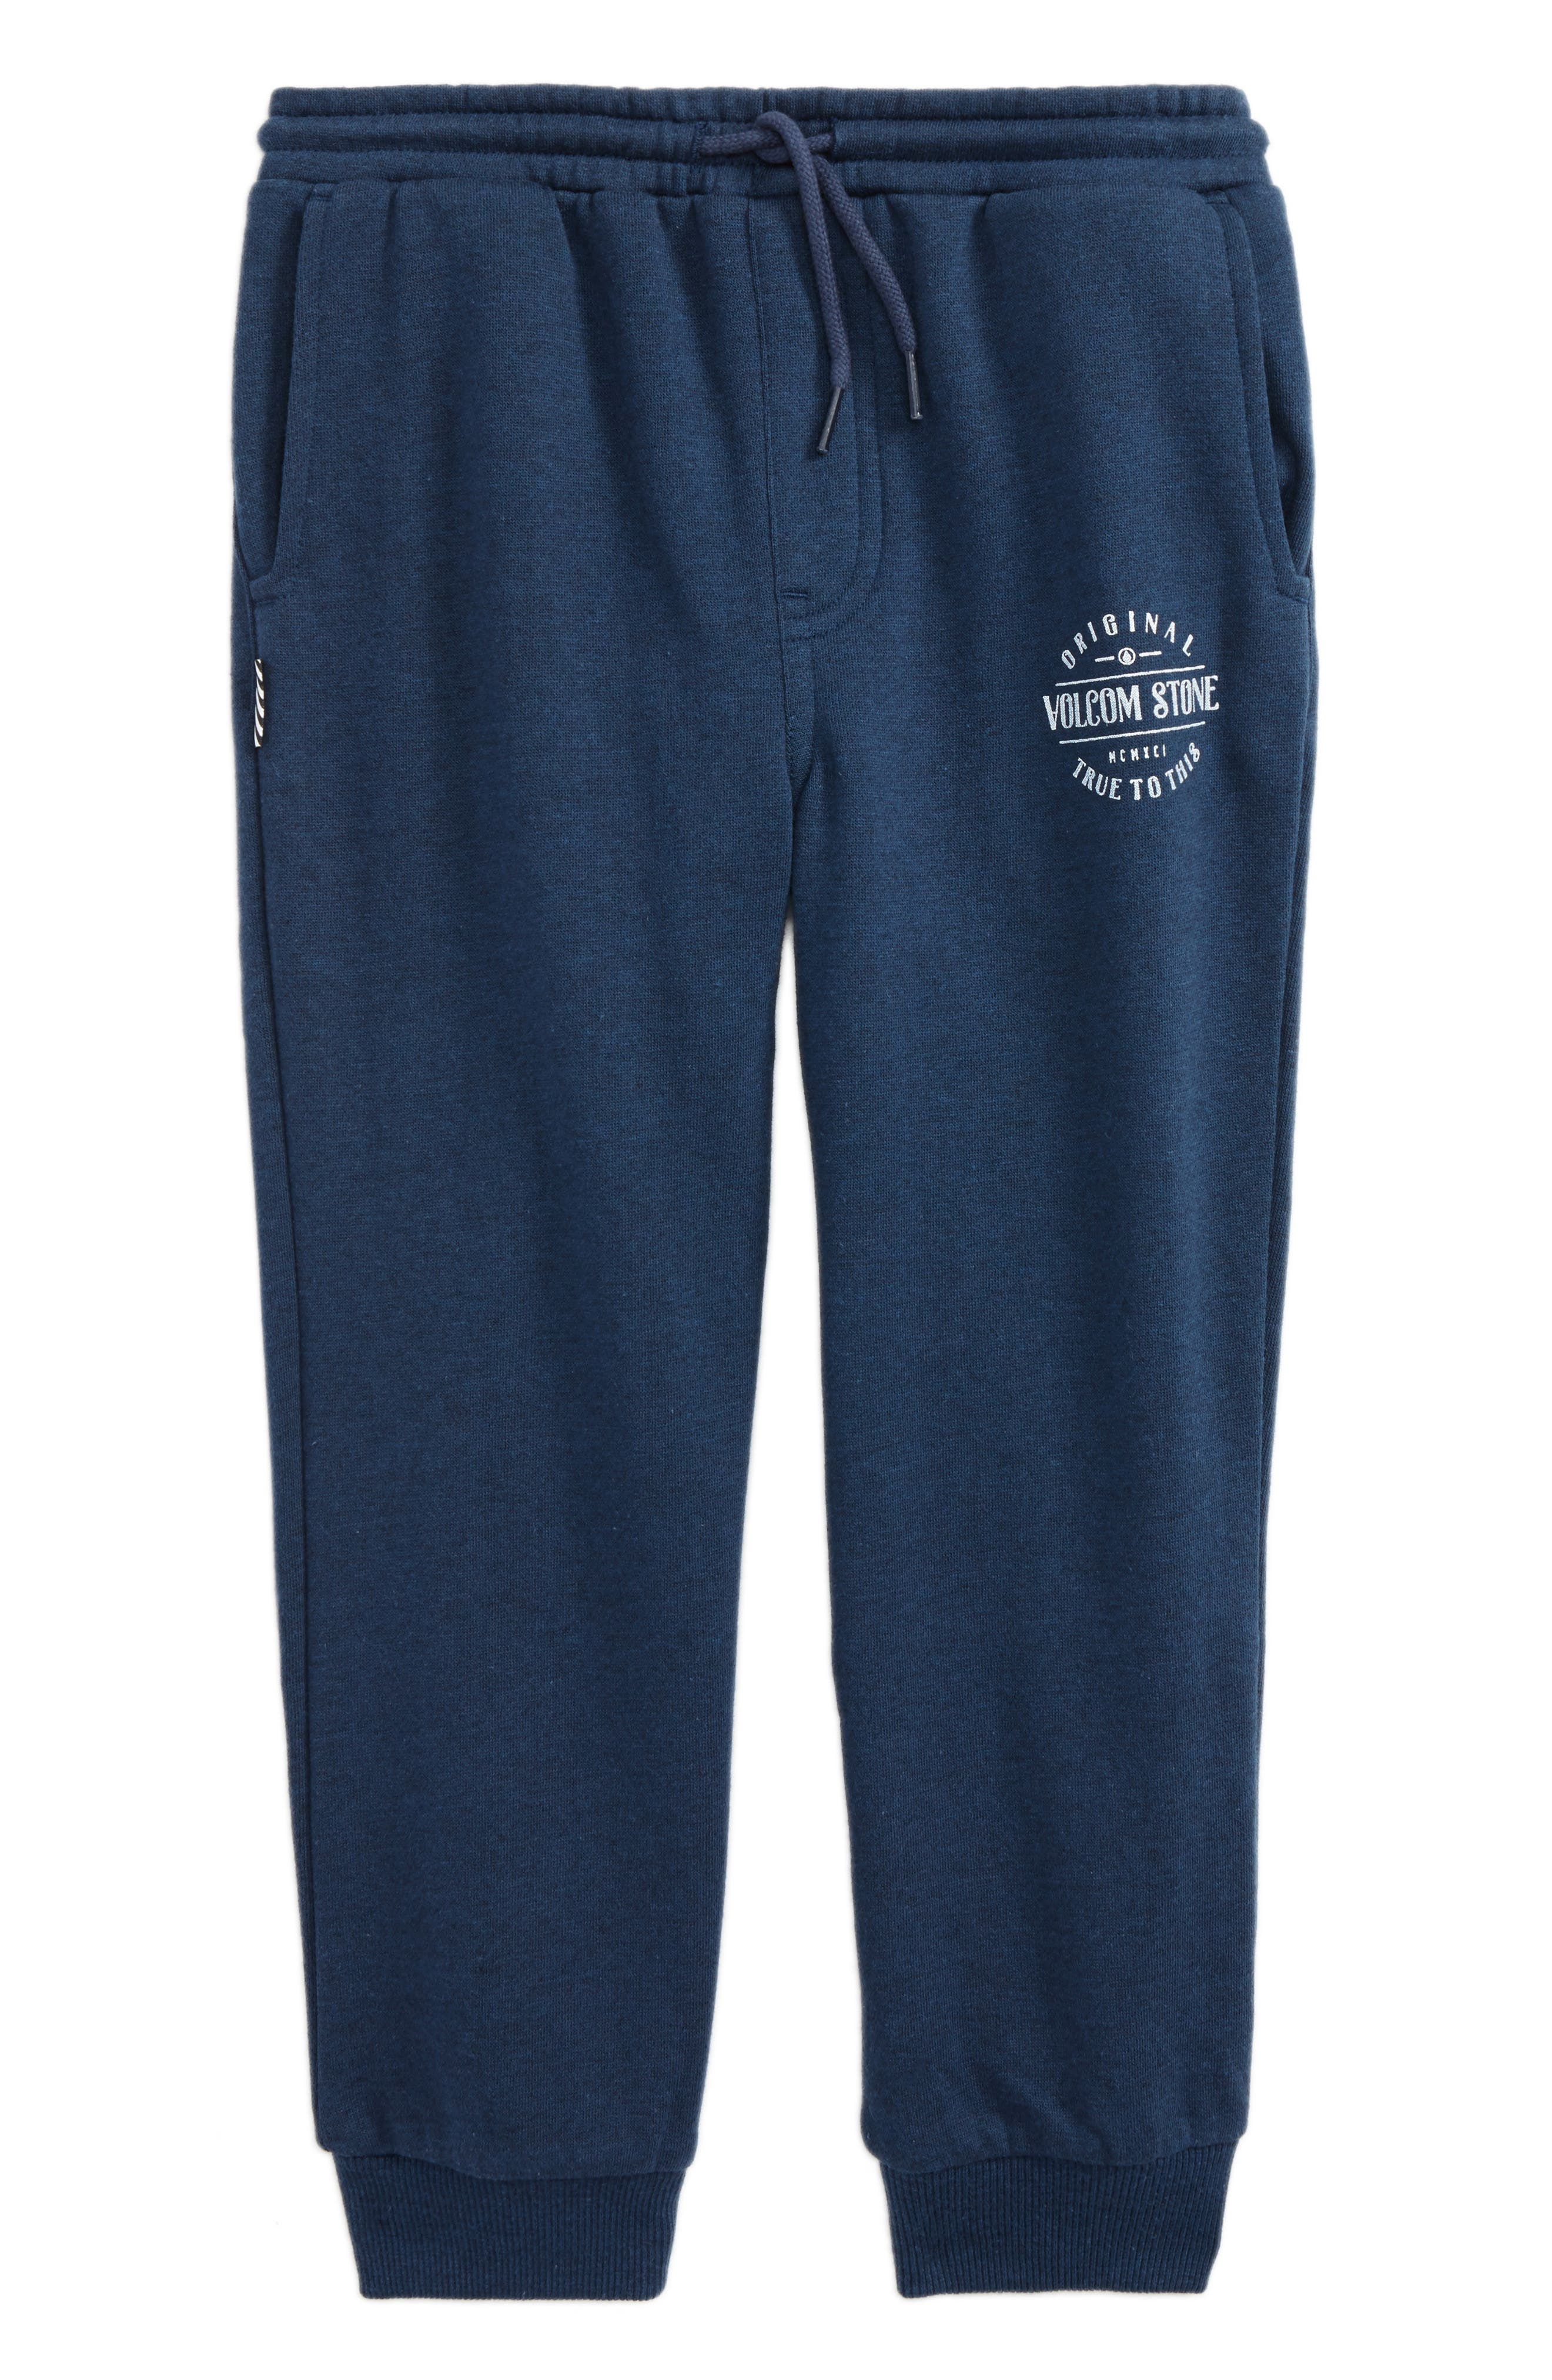 Main Image - Volcom Graphic Fleece Sweatpants (Toddler Boys & Little Boys)